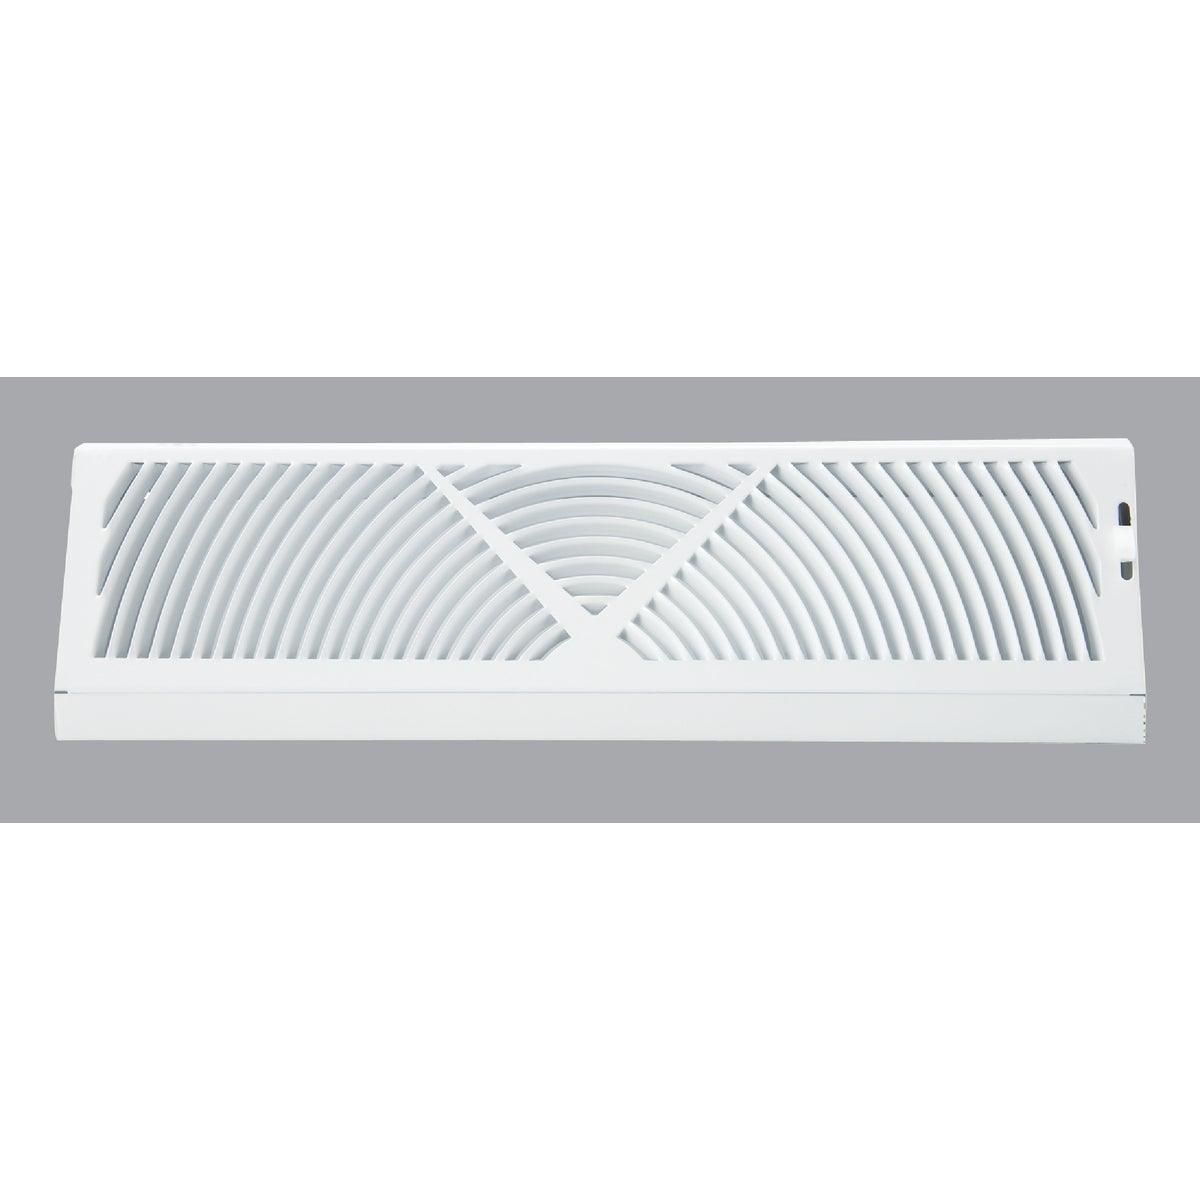 Home Impressions Baseboard Diffuser, 1BB1800WH